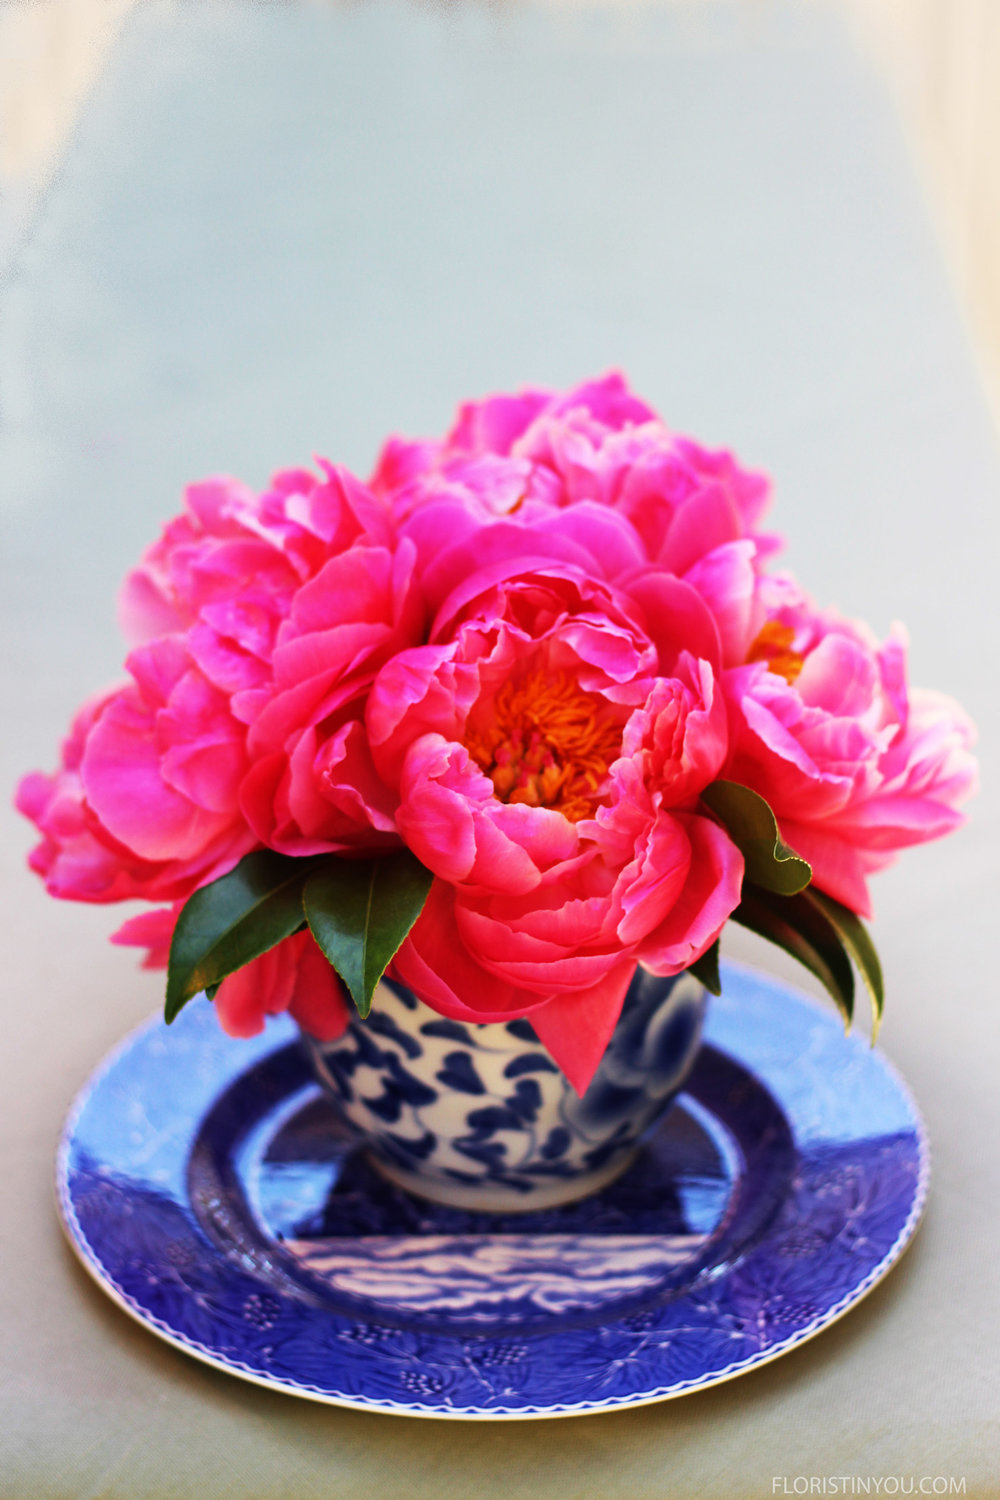 Welcome Summer with Peonies in Blue and White Porcelain